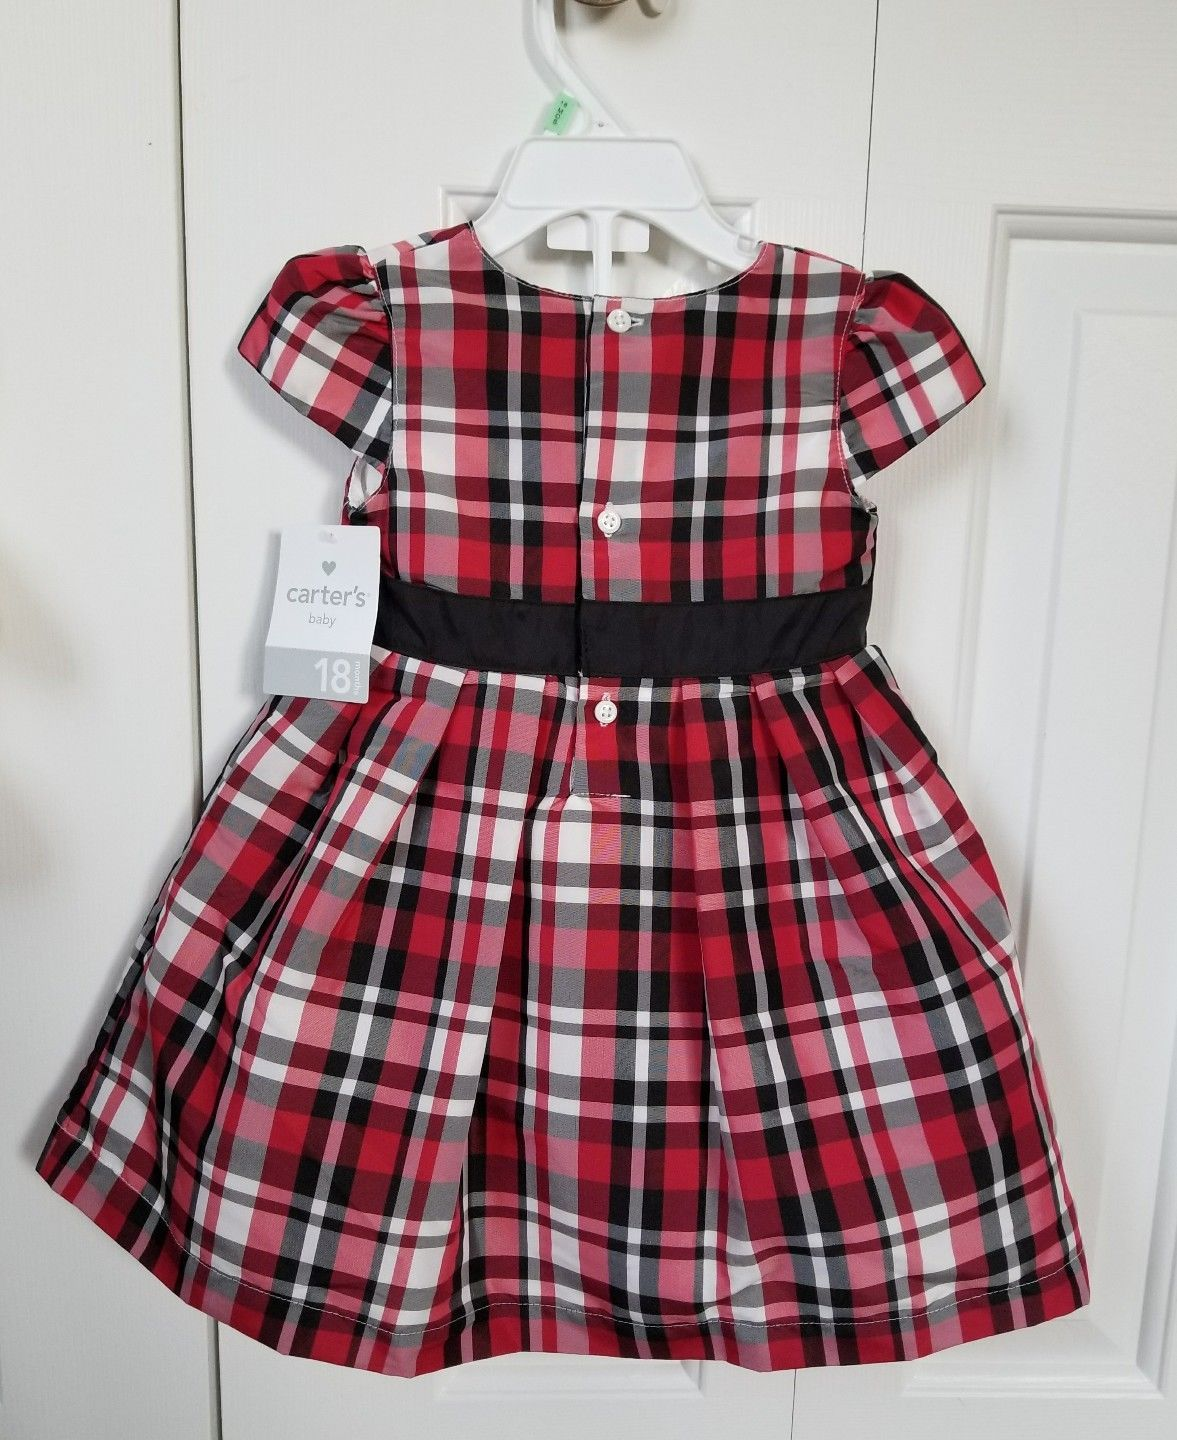 Carters baby girl plaid holiday christmas dress size months black